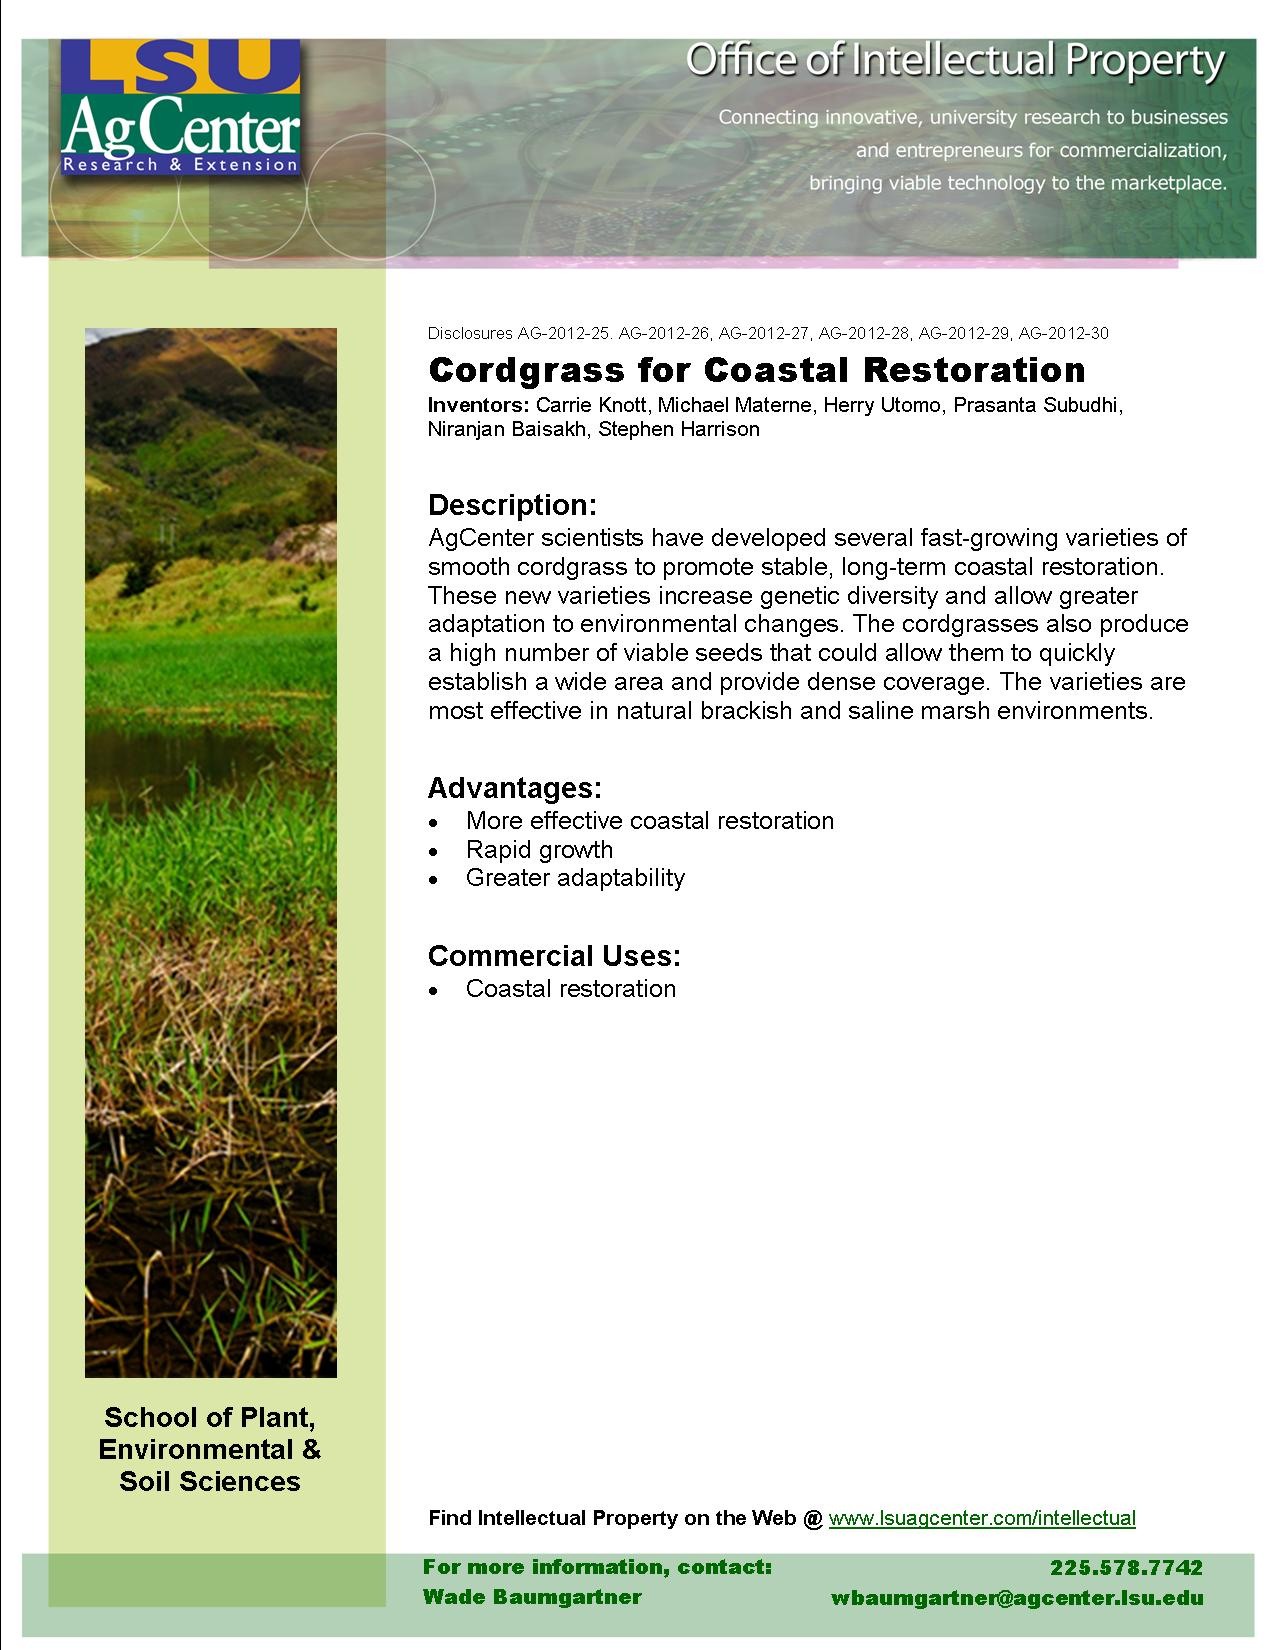 Cordgrass for Coastal Restoration